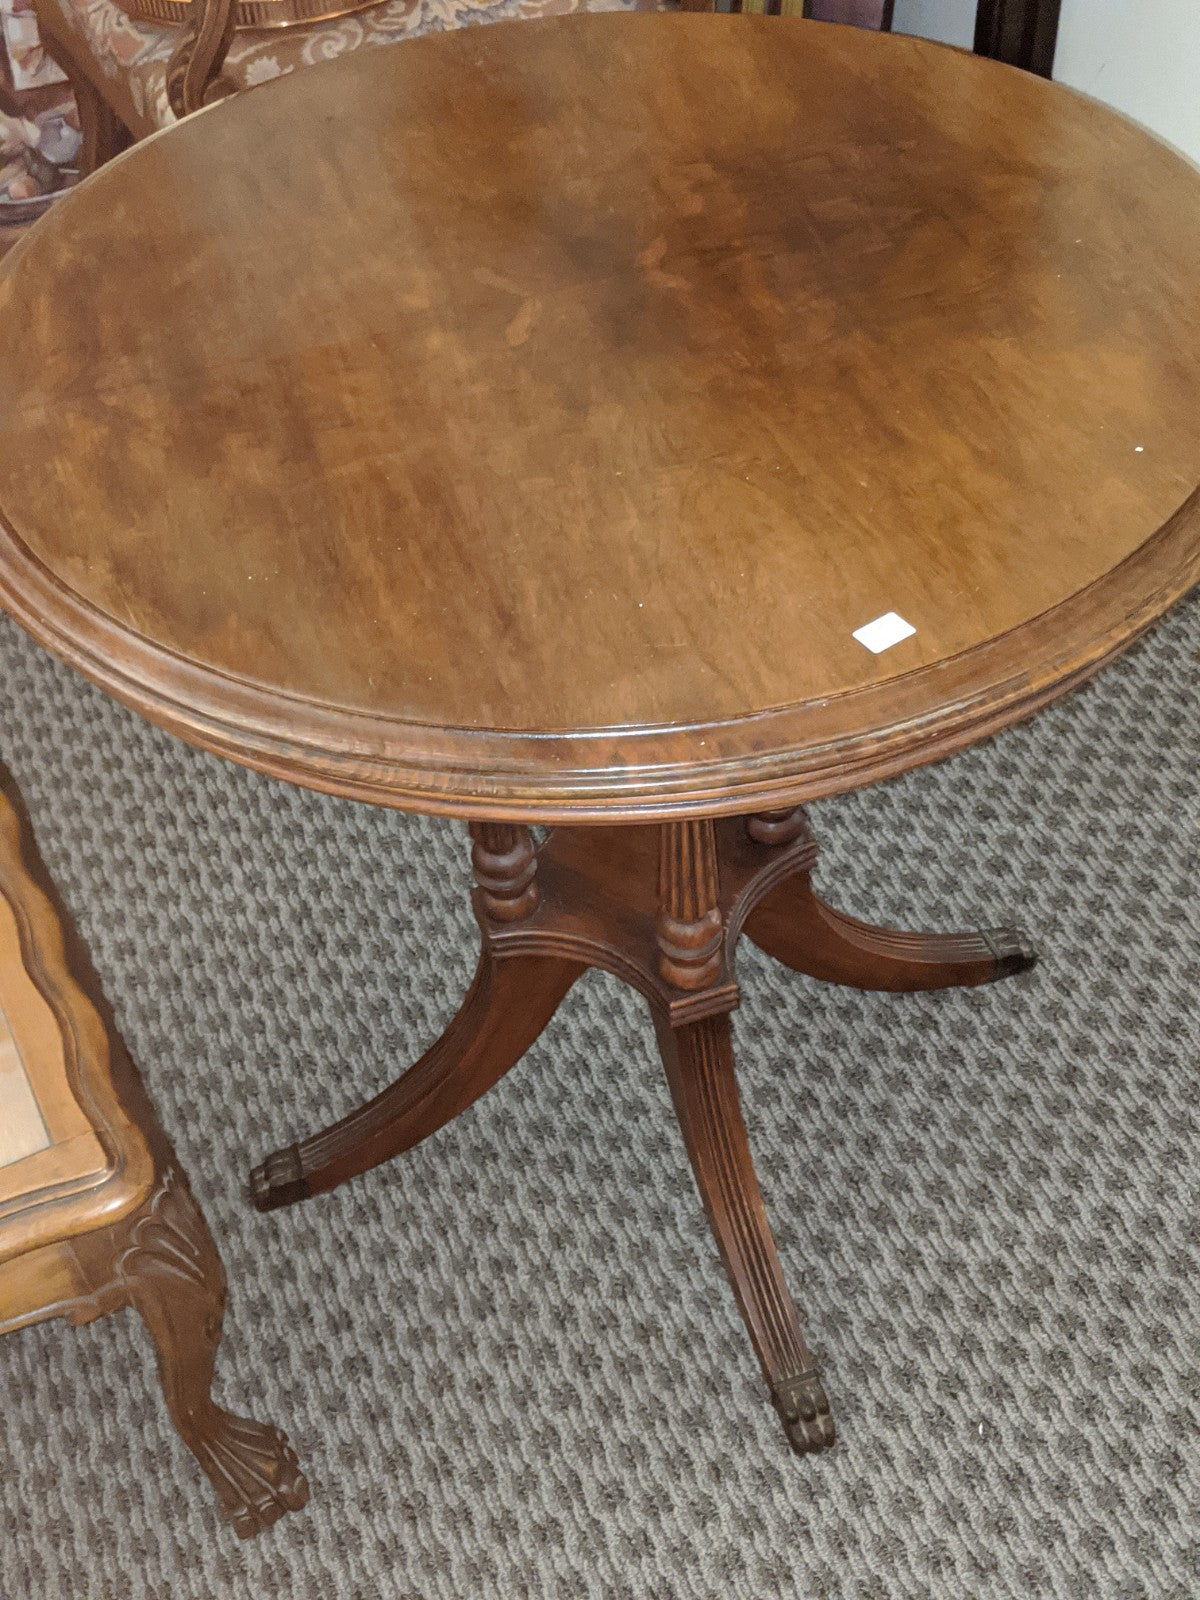 Vintage 28 inch round side table